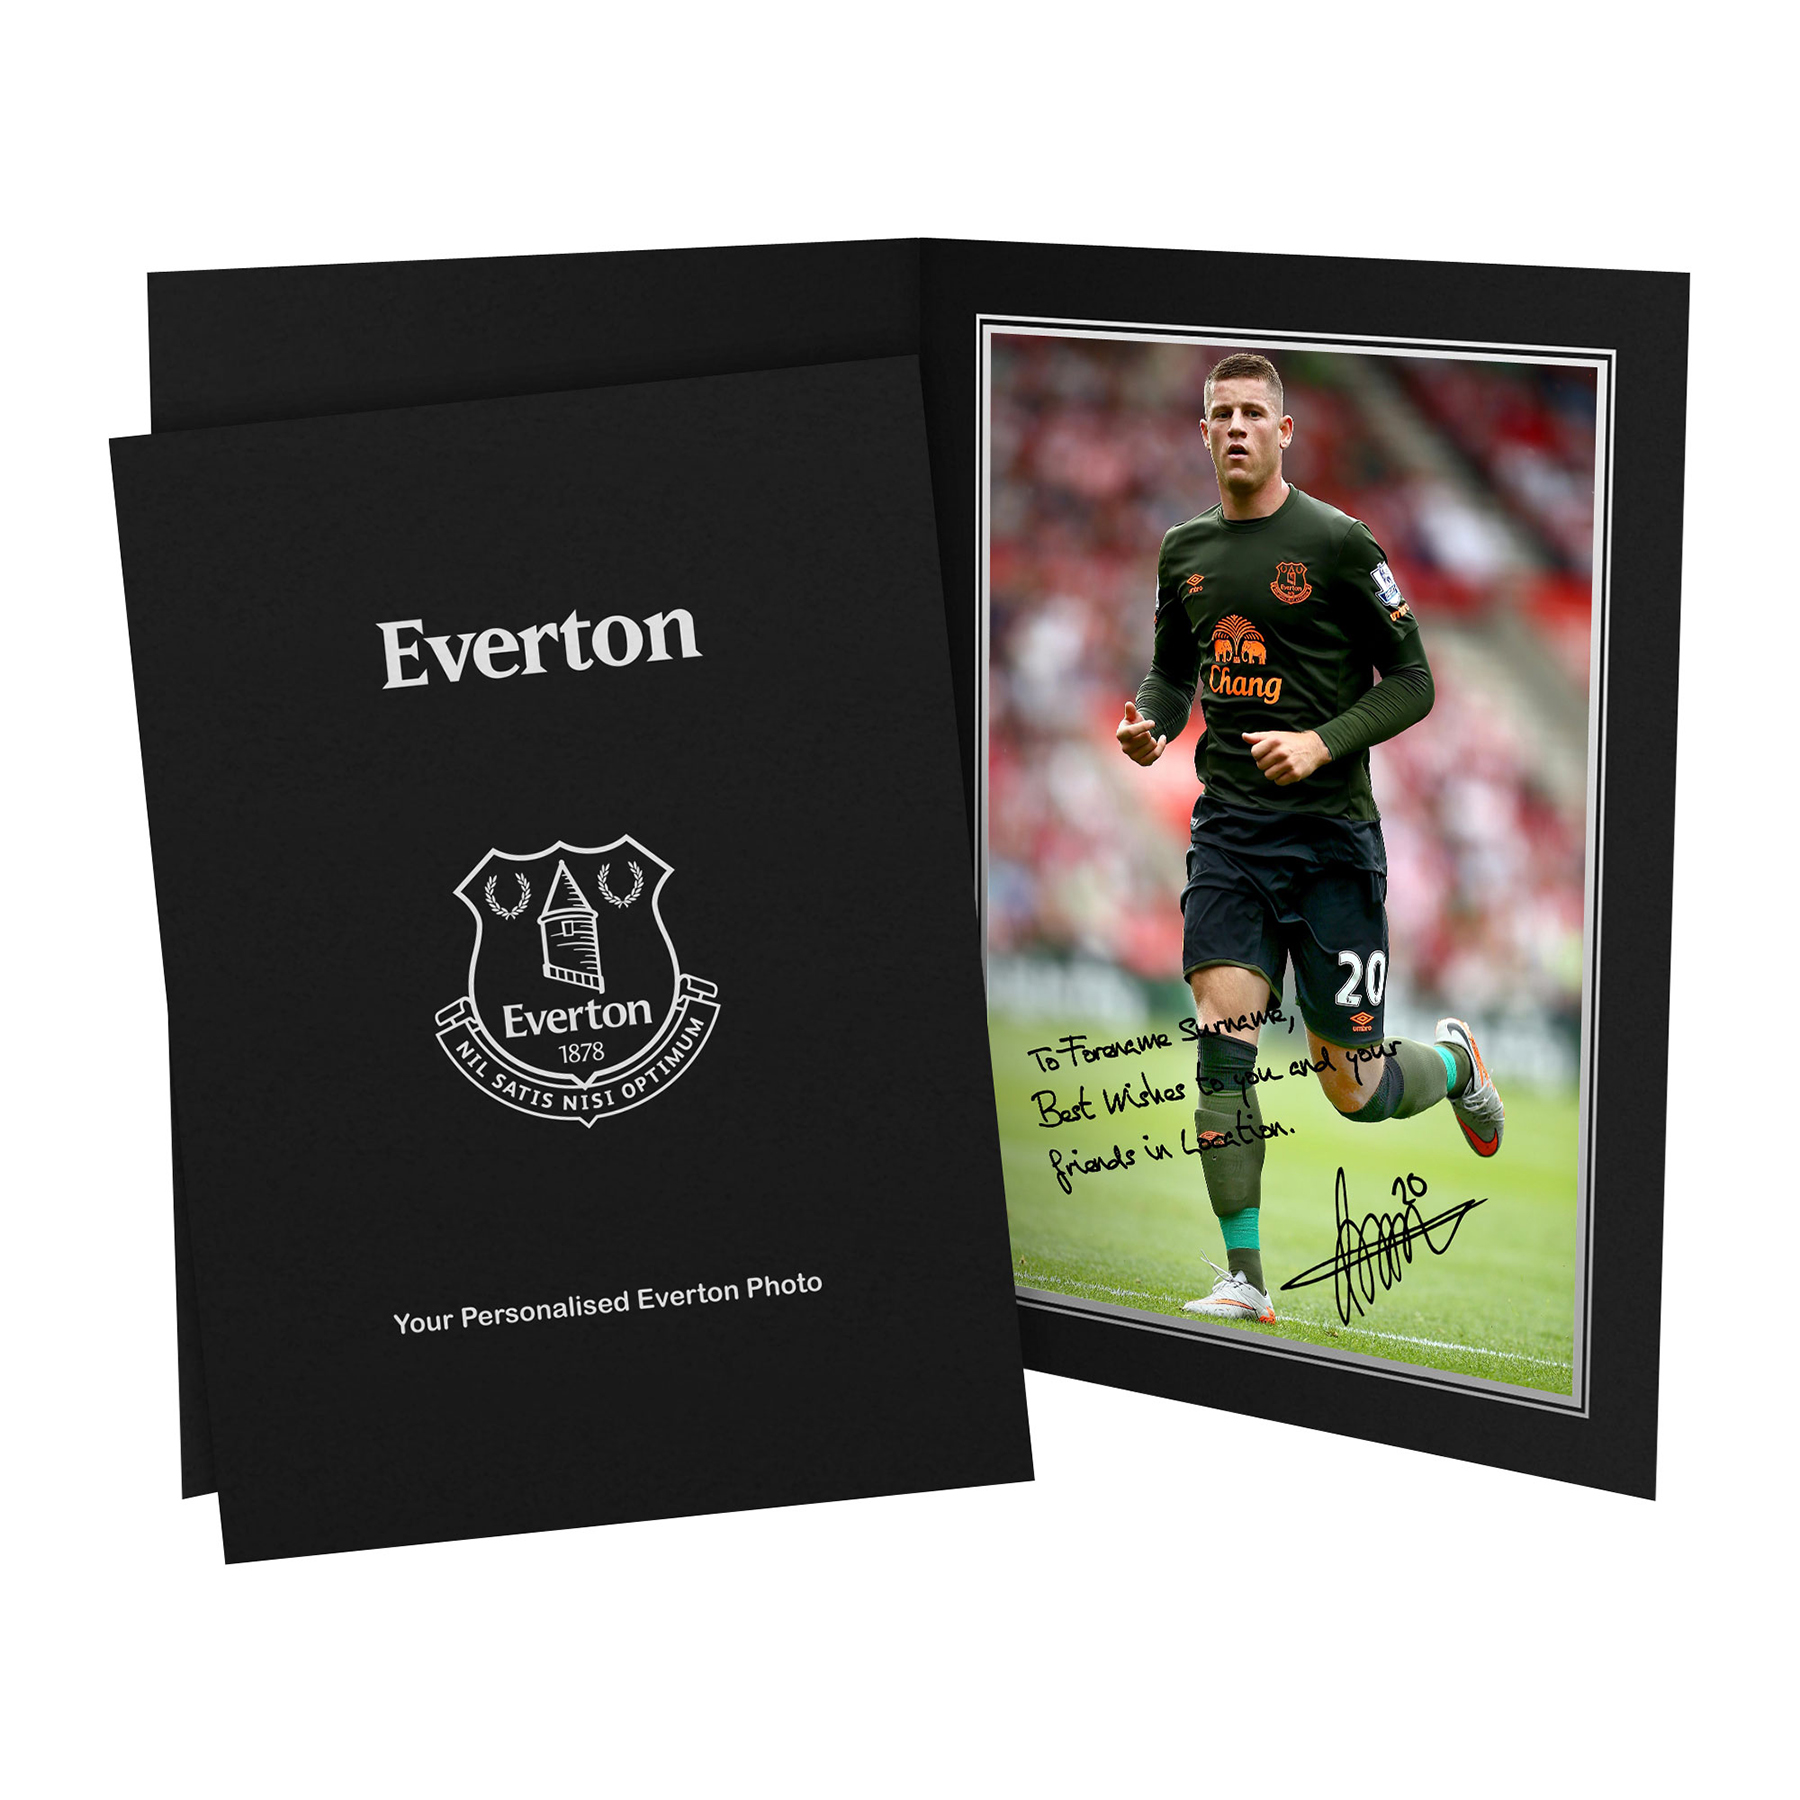 Everton Personalised Signature Photo in Presentation Folder - Barkley